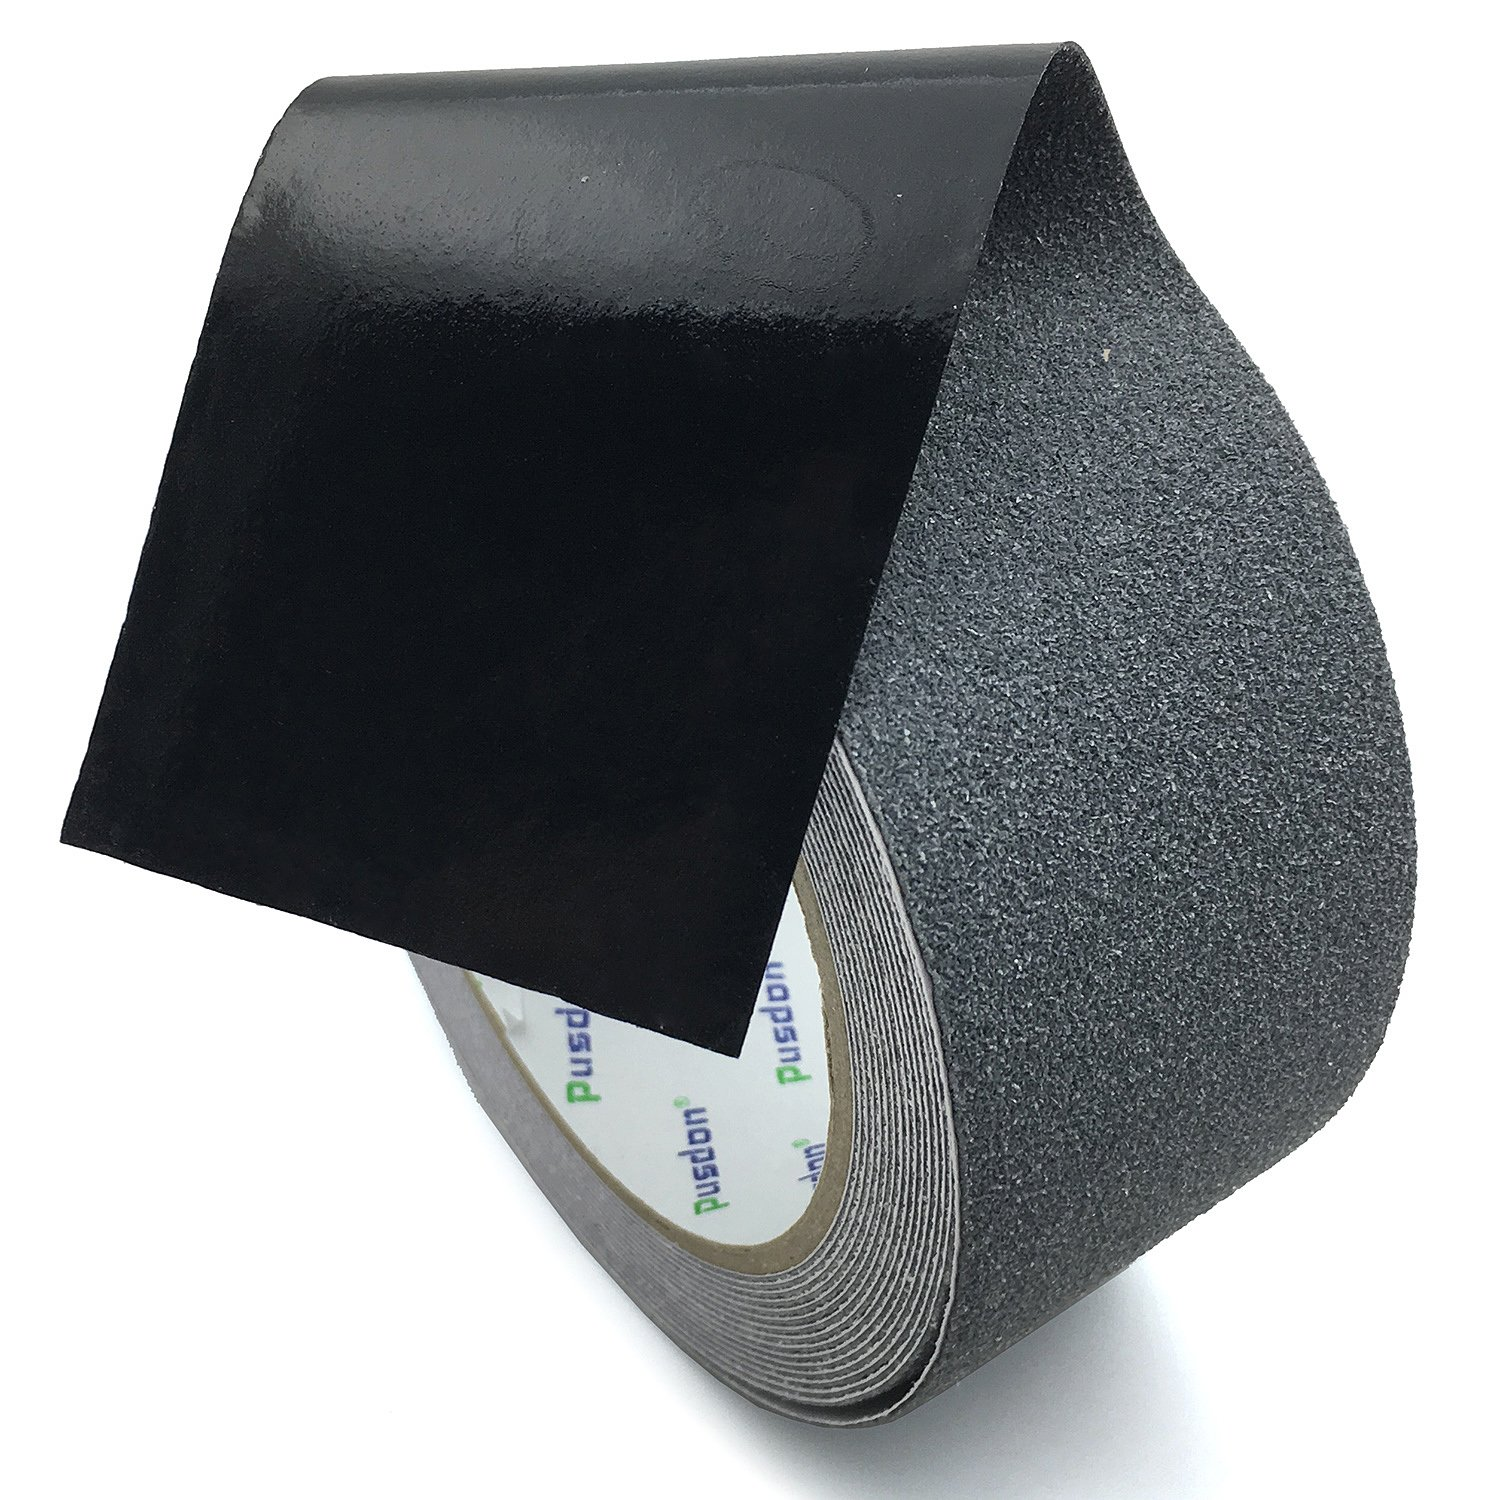 50mm x 4.75m 2-Inch x 15Ft Luminous Pusdon Anti Slip Non Skid Safety Tape Green Glowing In The Dark Safety Stage